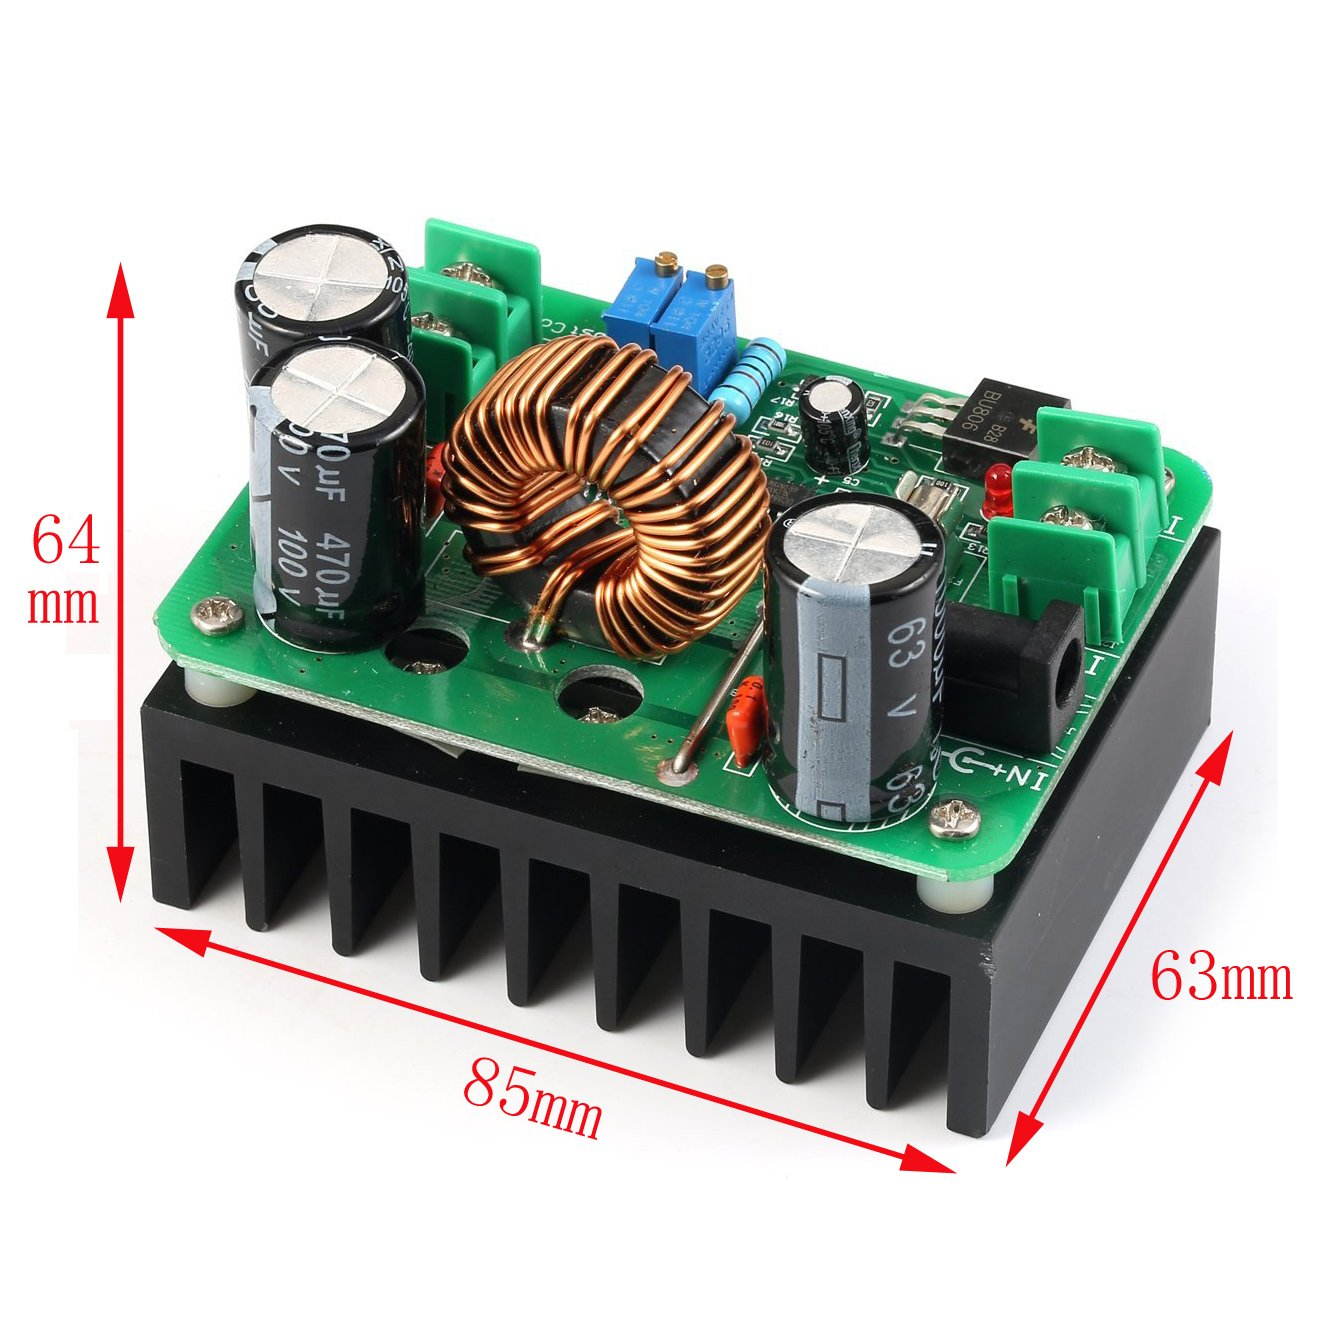 Geree Dc Boost Converter 10 60v To 12 80v Step Up Inductor Requirements For Converters And Filters In Automotive Voltage Regulator 600w Auto Power Supply Transformer Adjustable Output Volt Controller